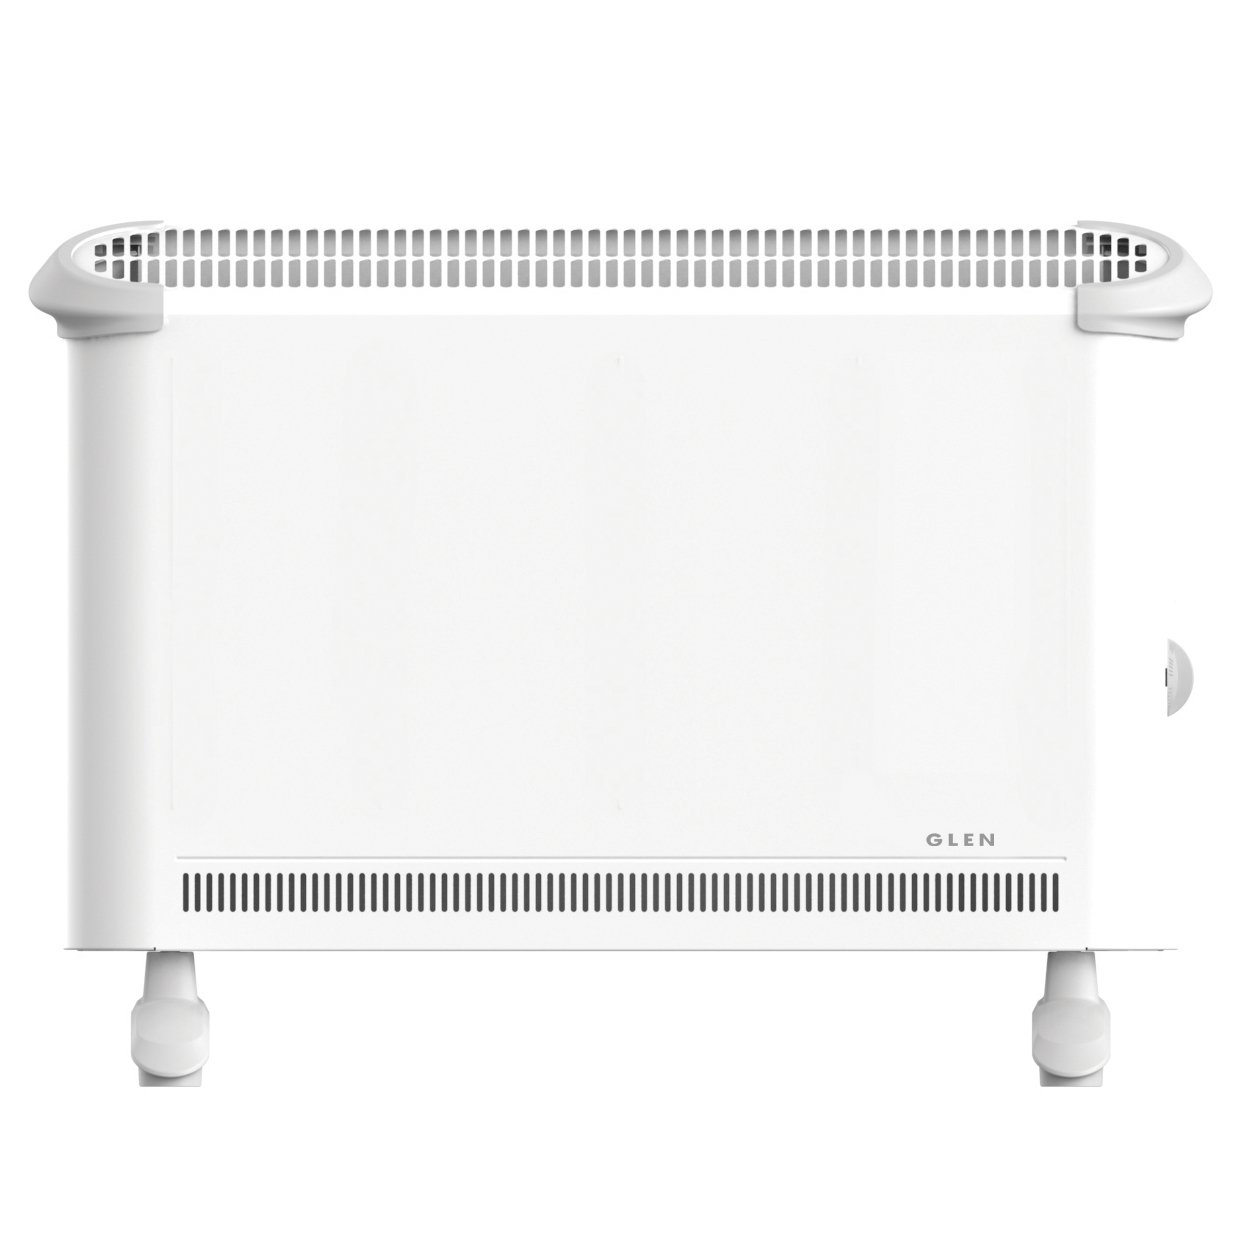 Glen Dimplex Convector Heater with Thermostat, 2000 W, White G2TN